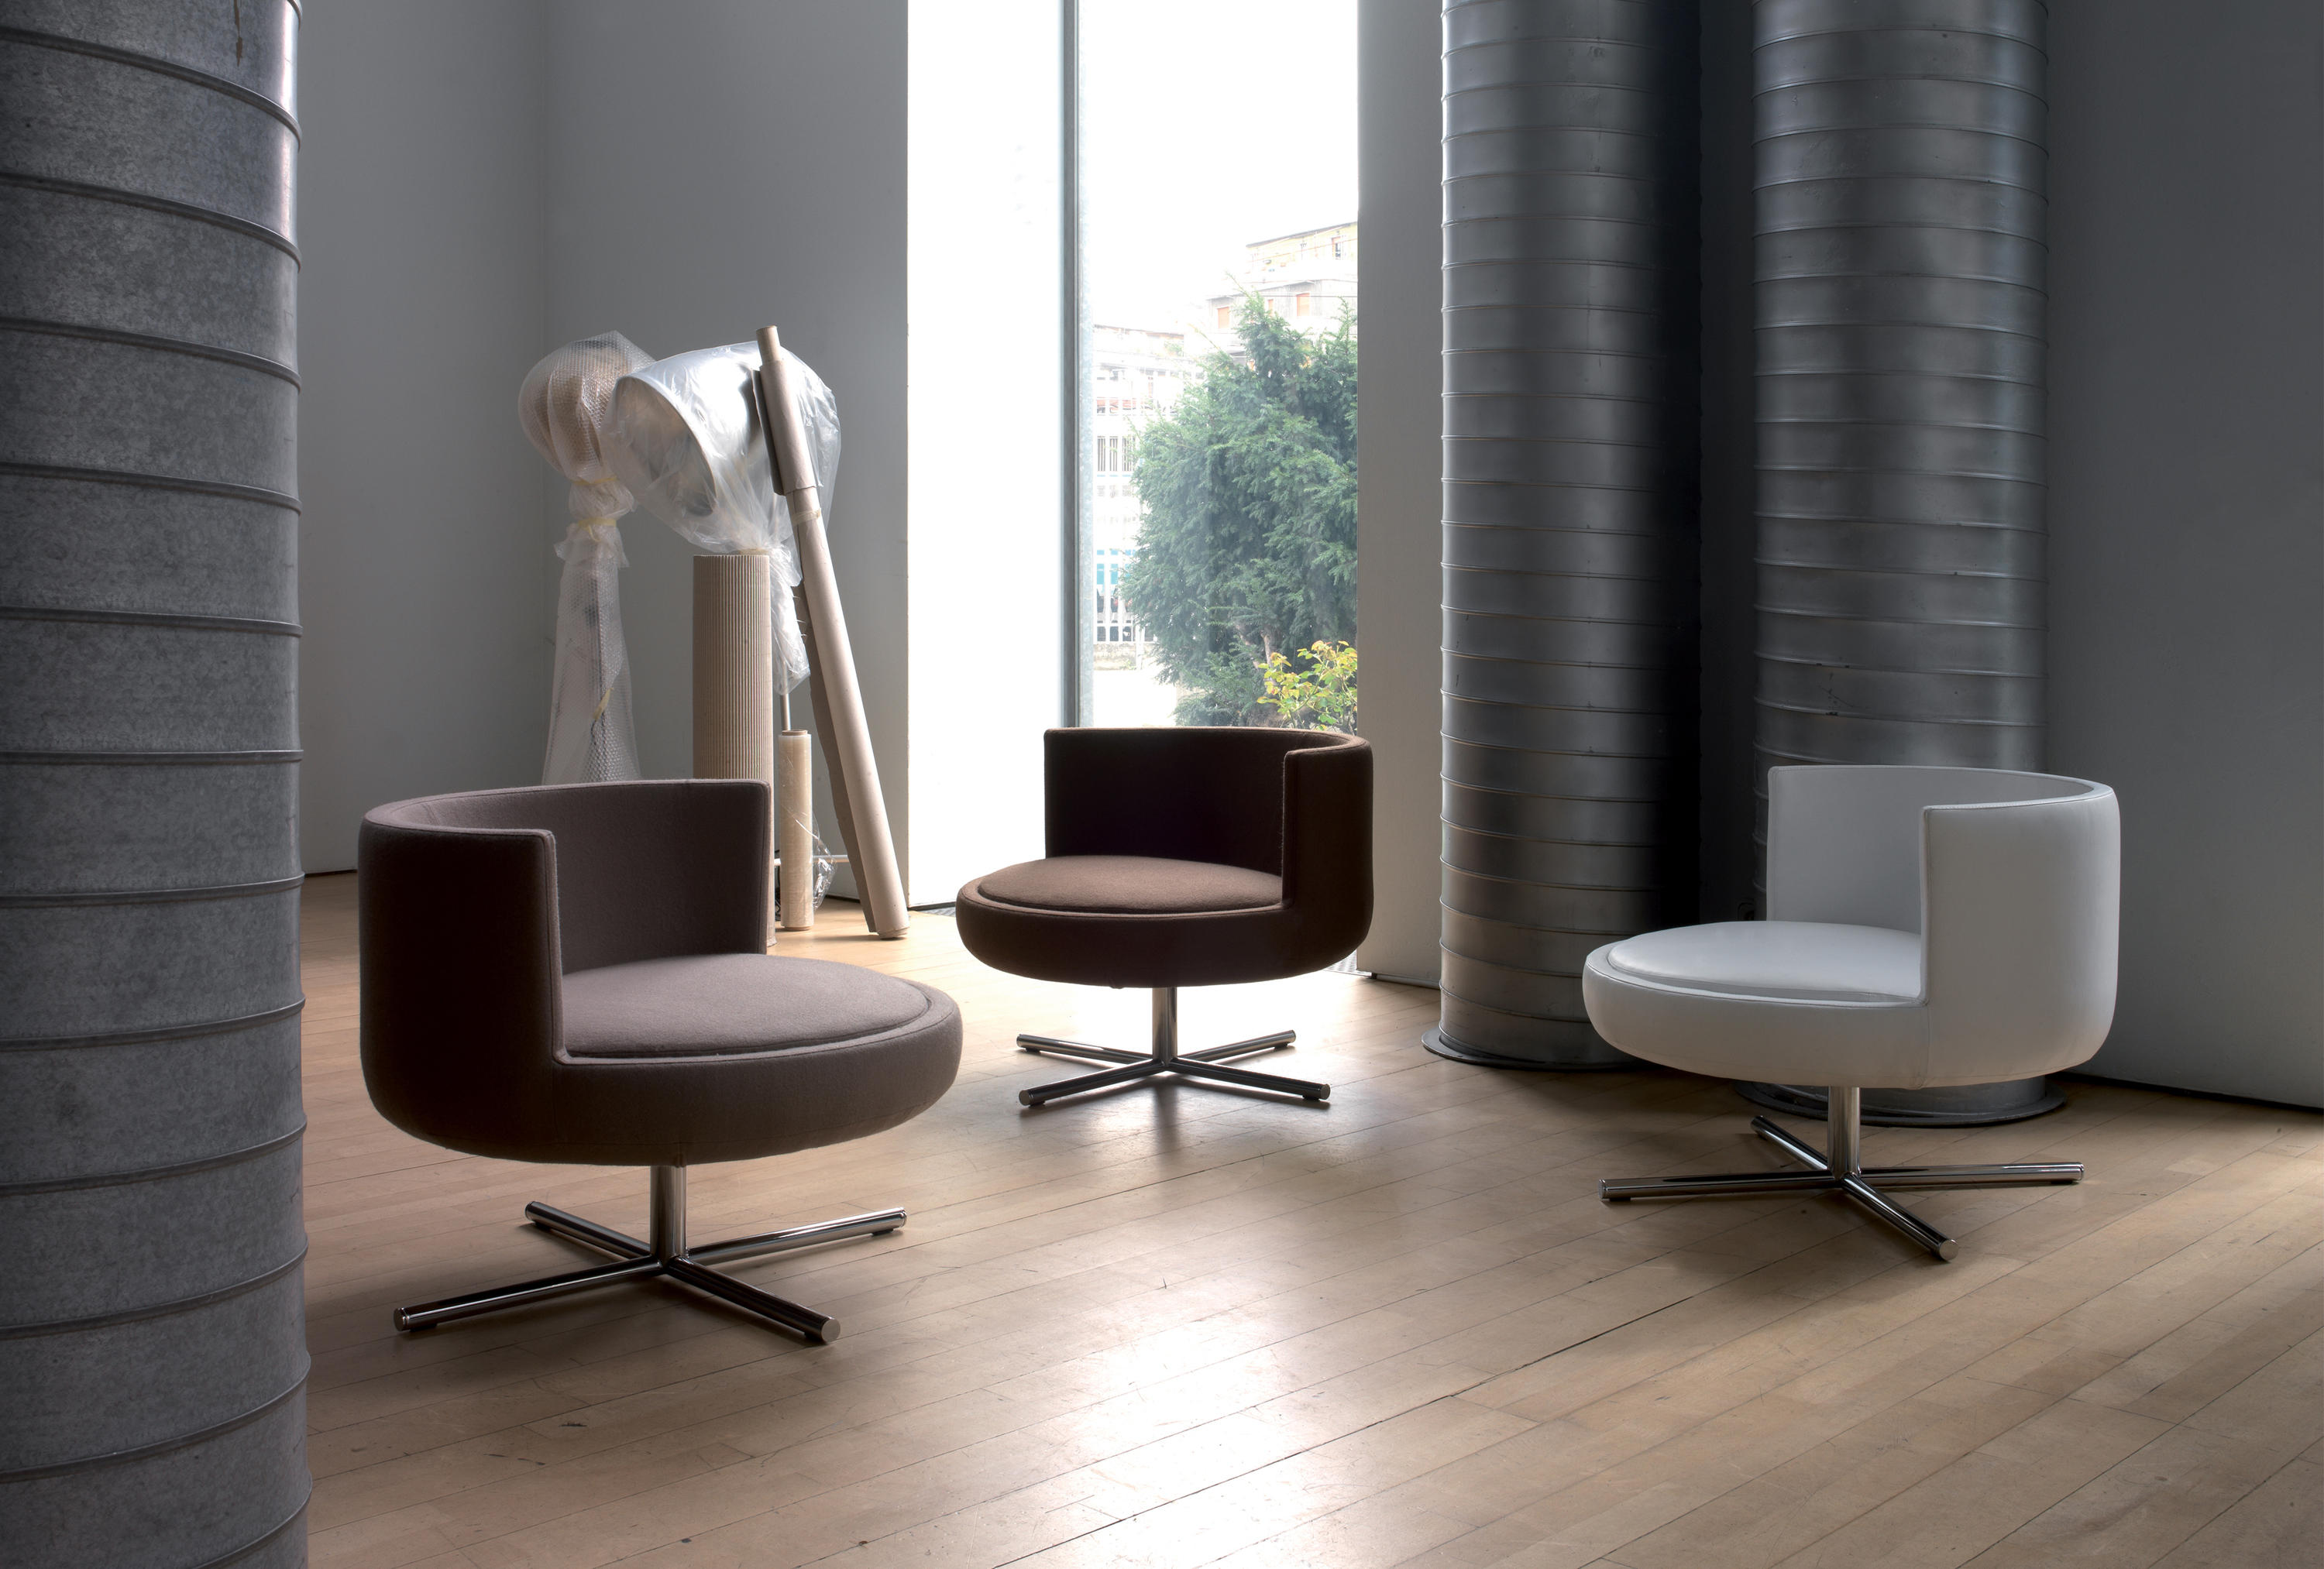 ROUND  Lounge chairs from BT Design  Architonic